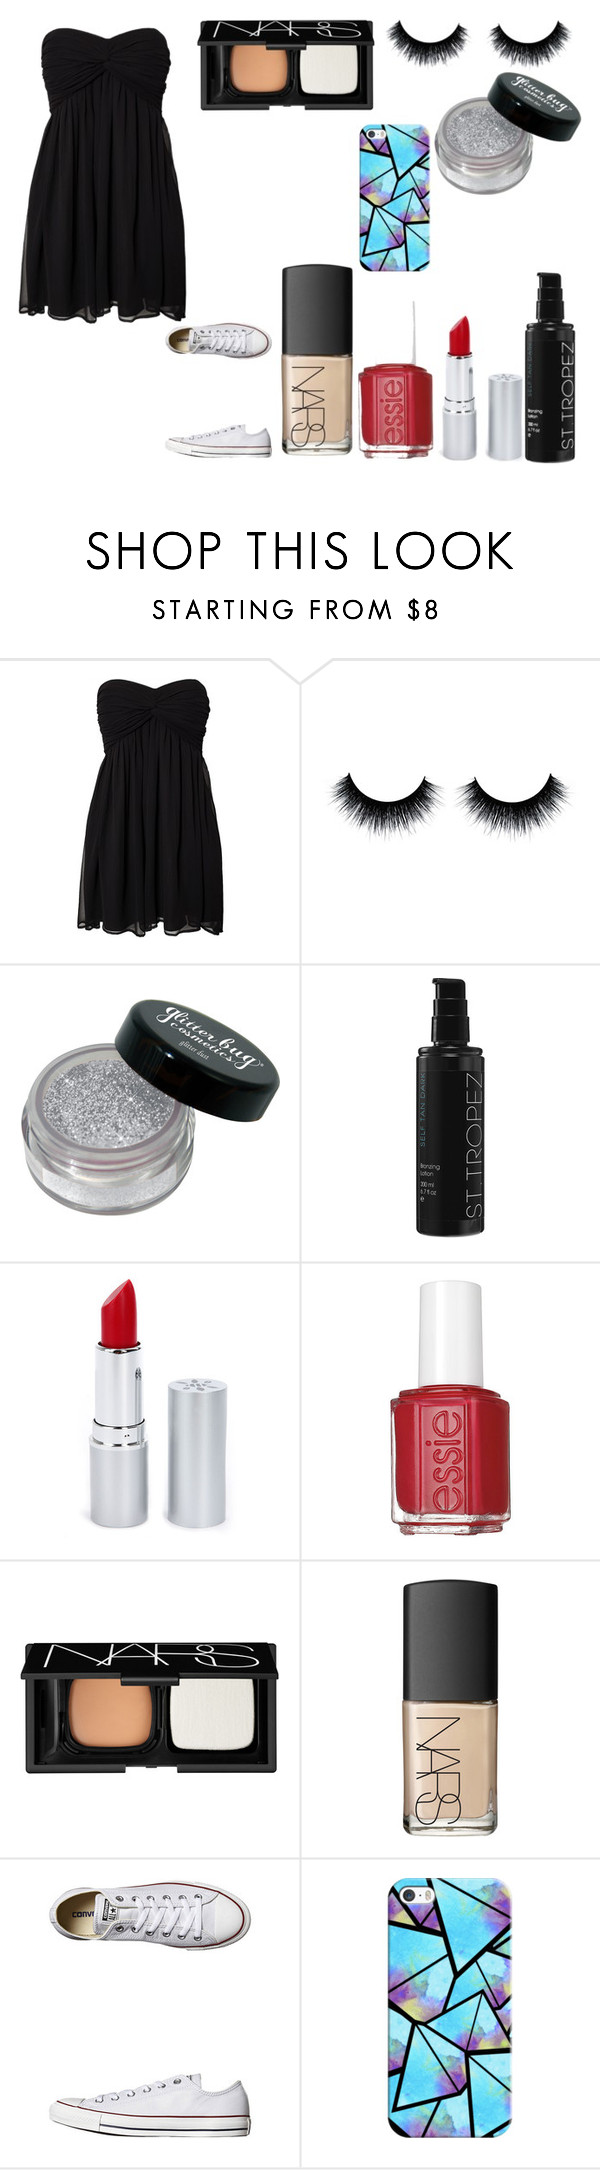 """Untitled #1286"" by teenage-rxjxct ❤ liked on Polyvore featuring NLY Trend, St. Tropez, HoneyBee Gardens, Essie, NARS Cosmetics, Converse and Casetify"